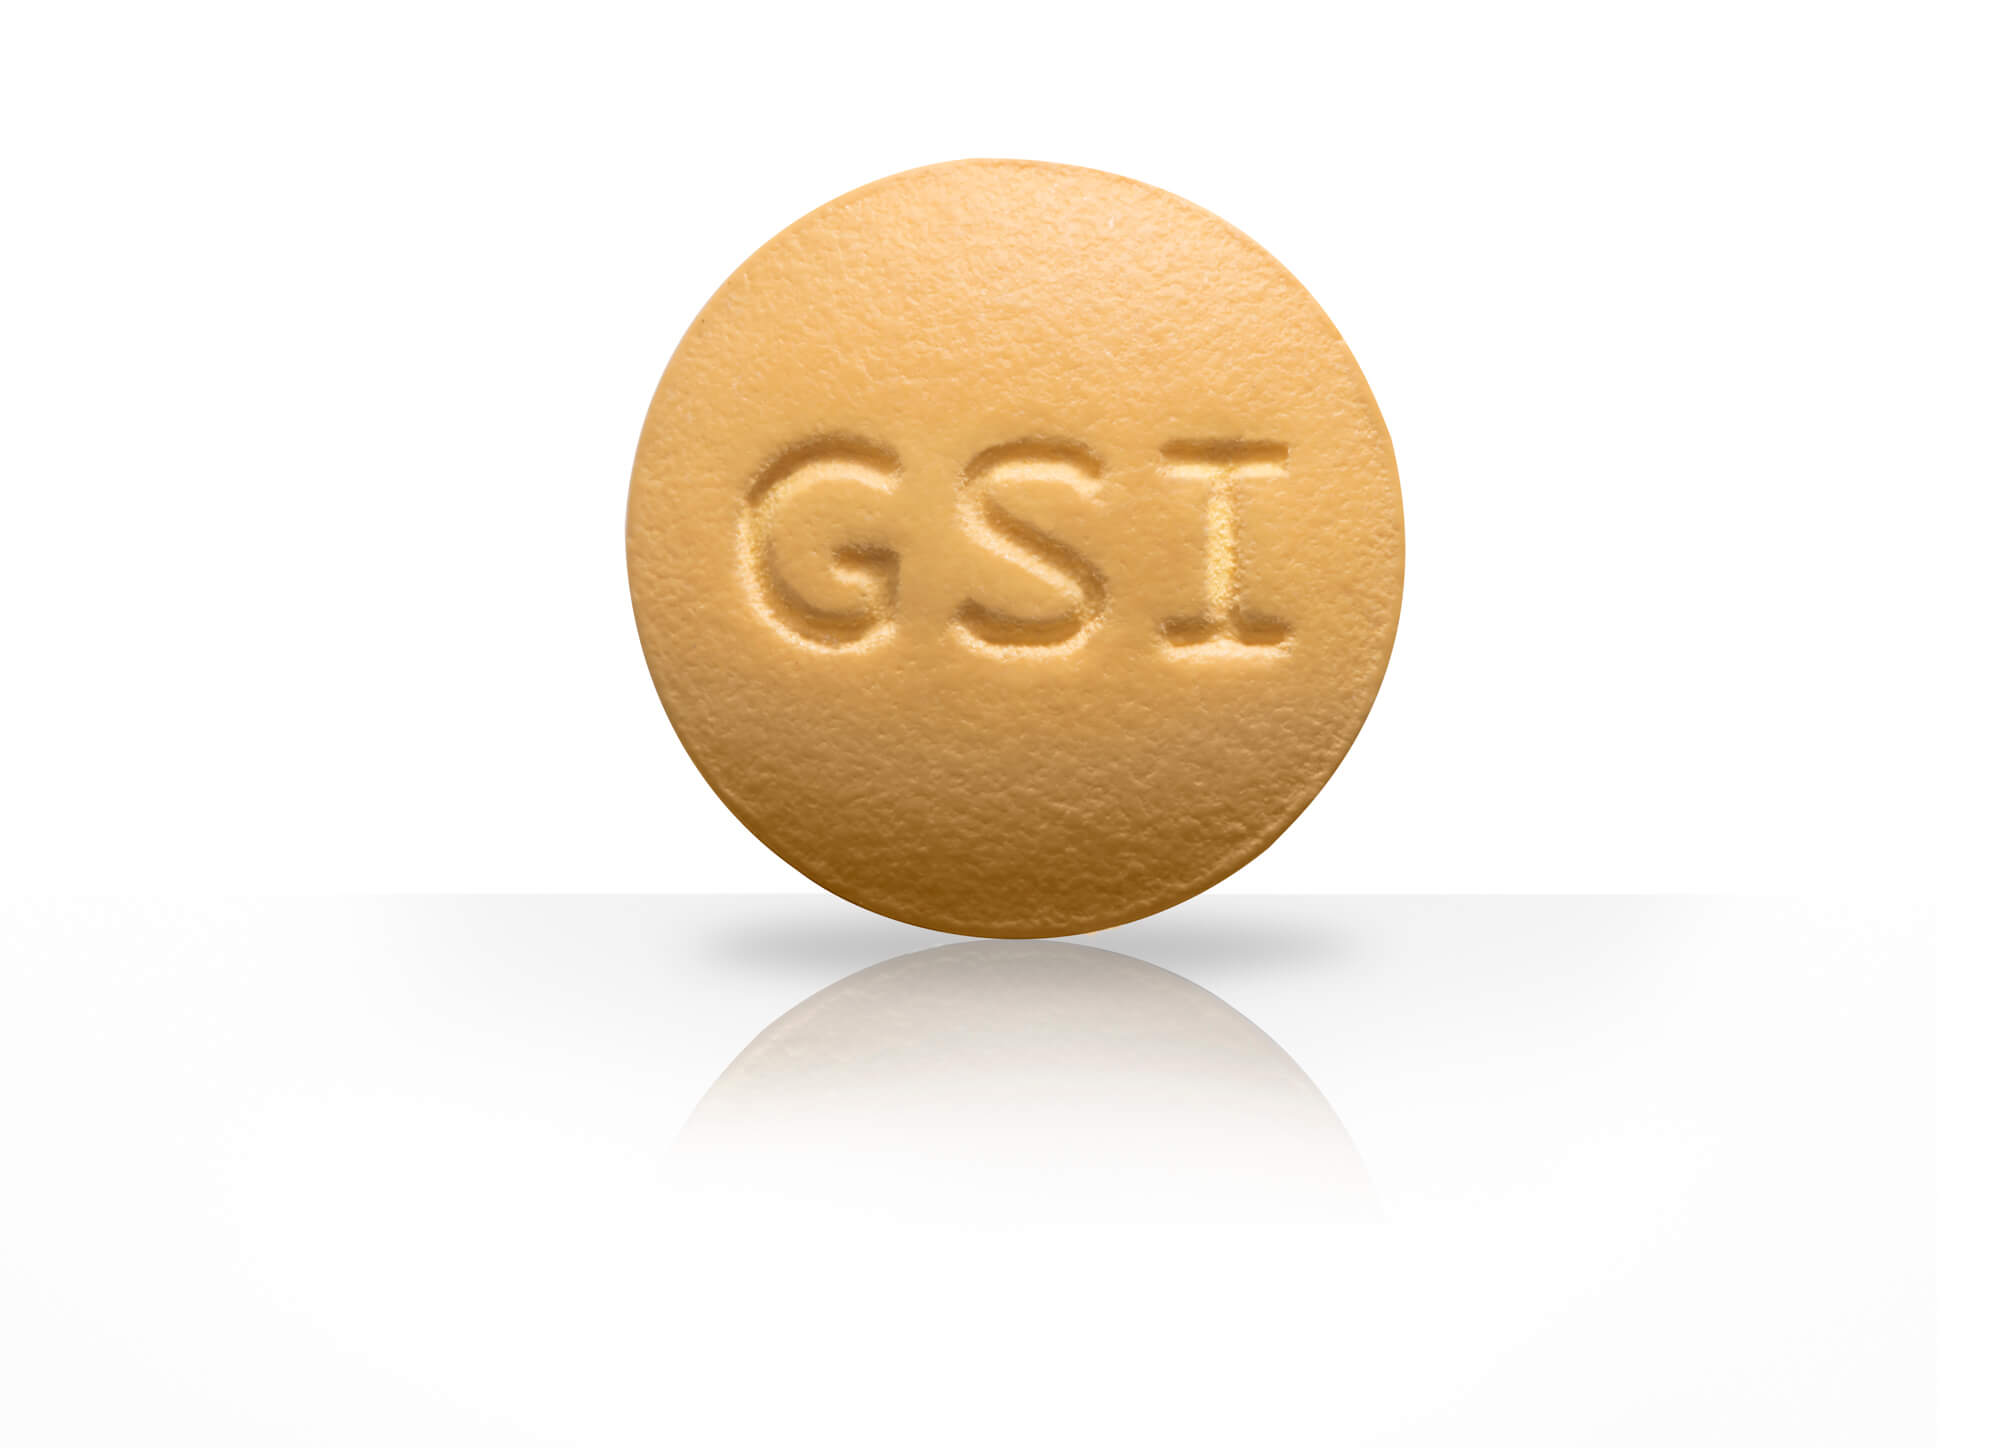 Medical photography for Nihon Koden, makers of patient monitoring & medical equipment.